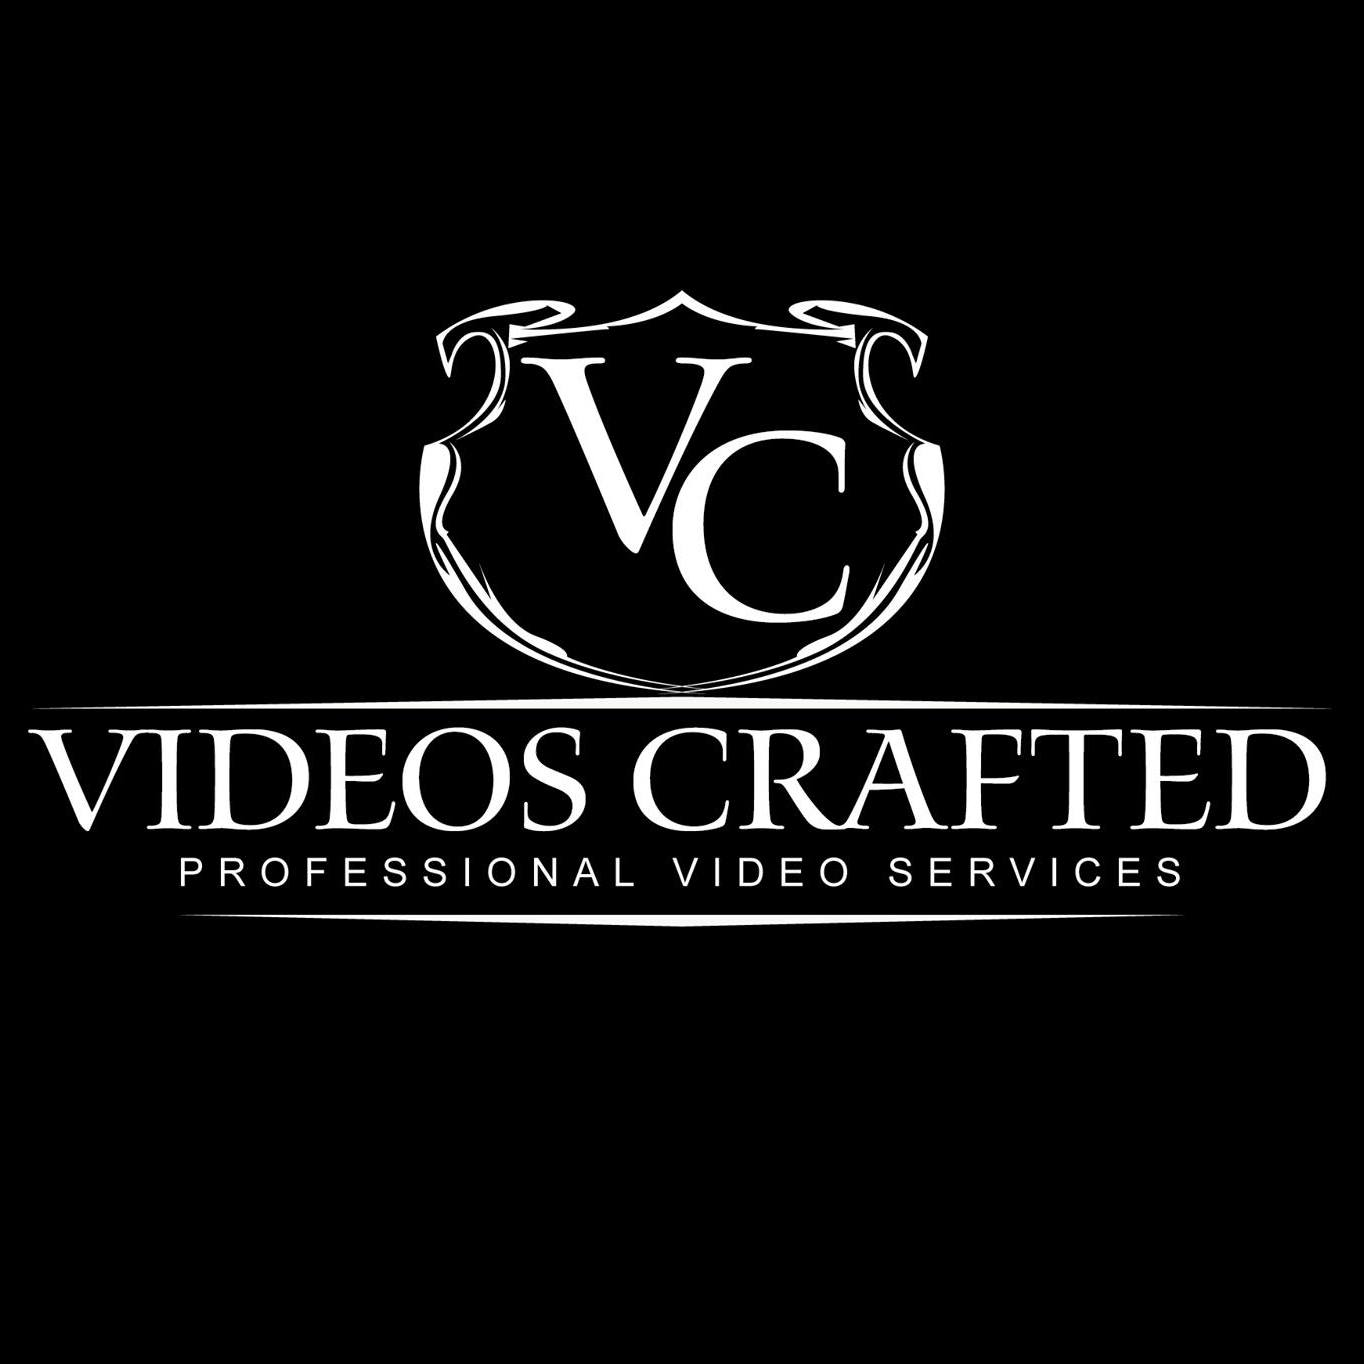 Videos Crafted